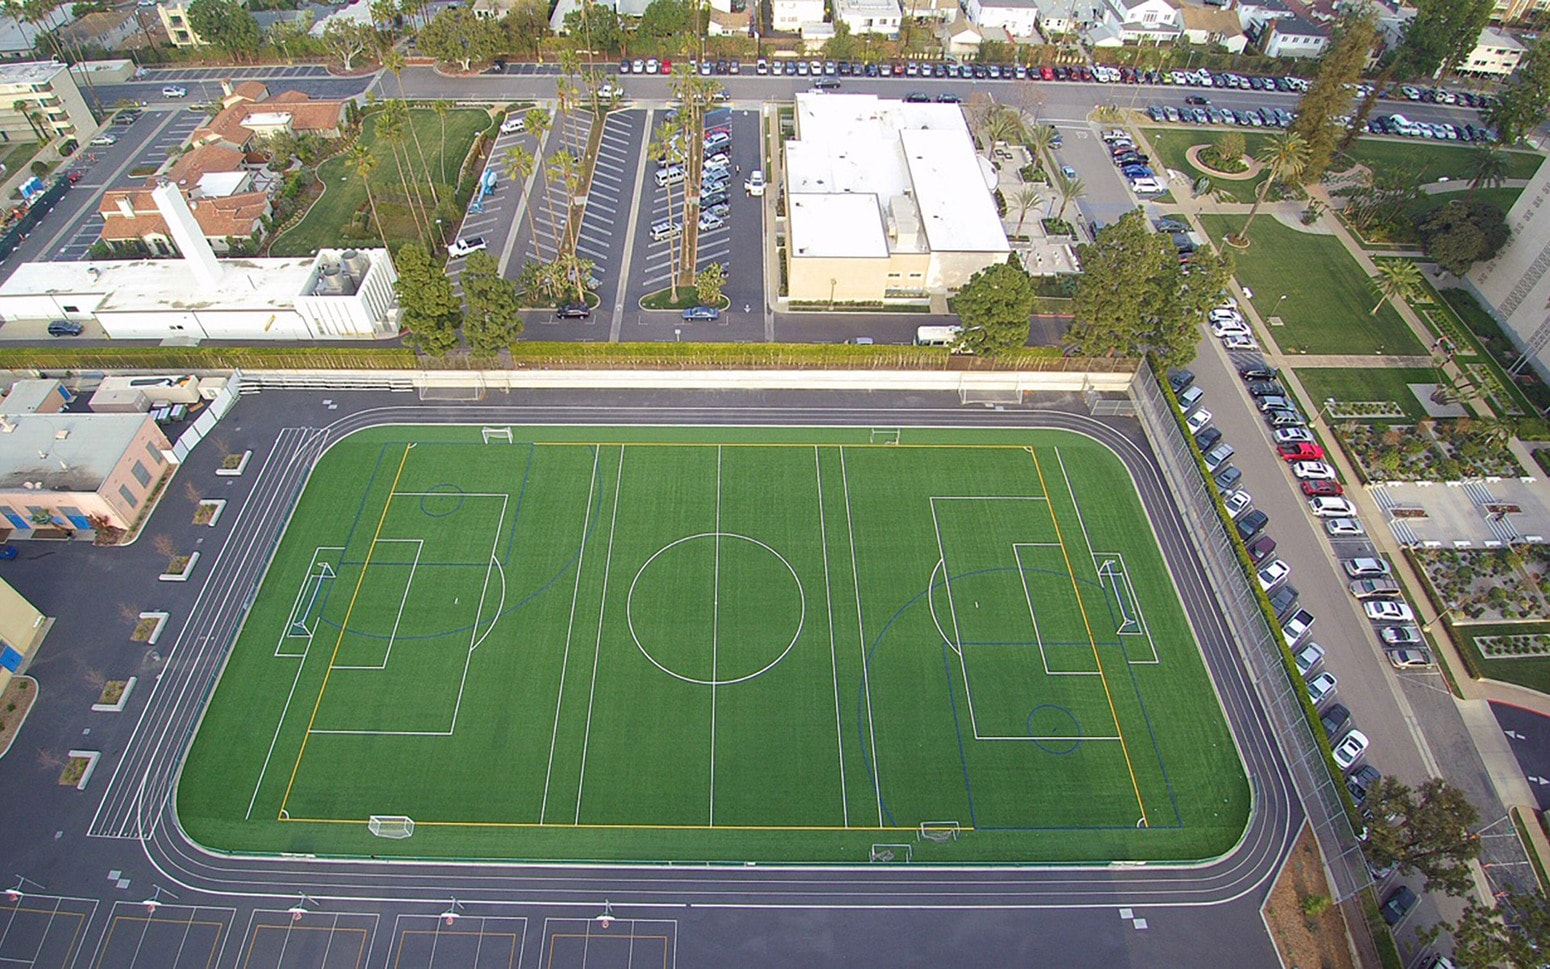 Emerson Middle School Synthetic Turf Conversion